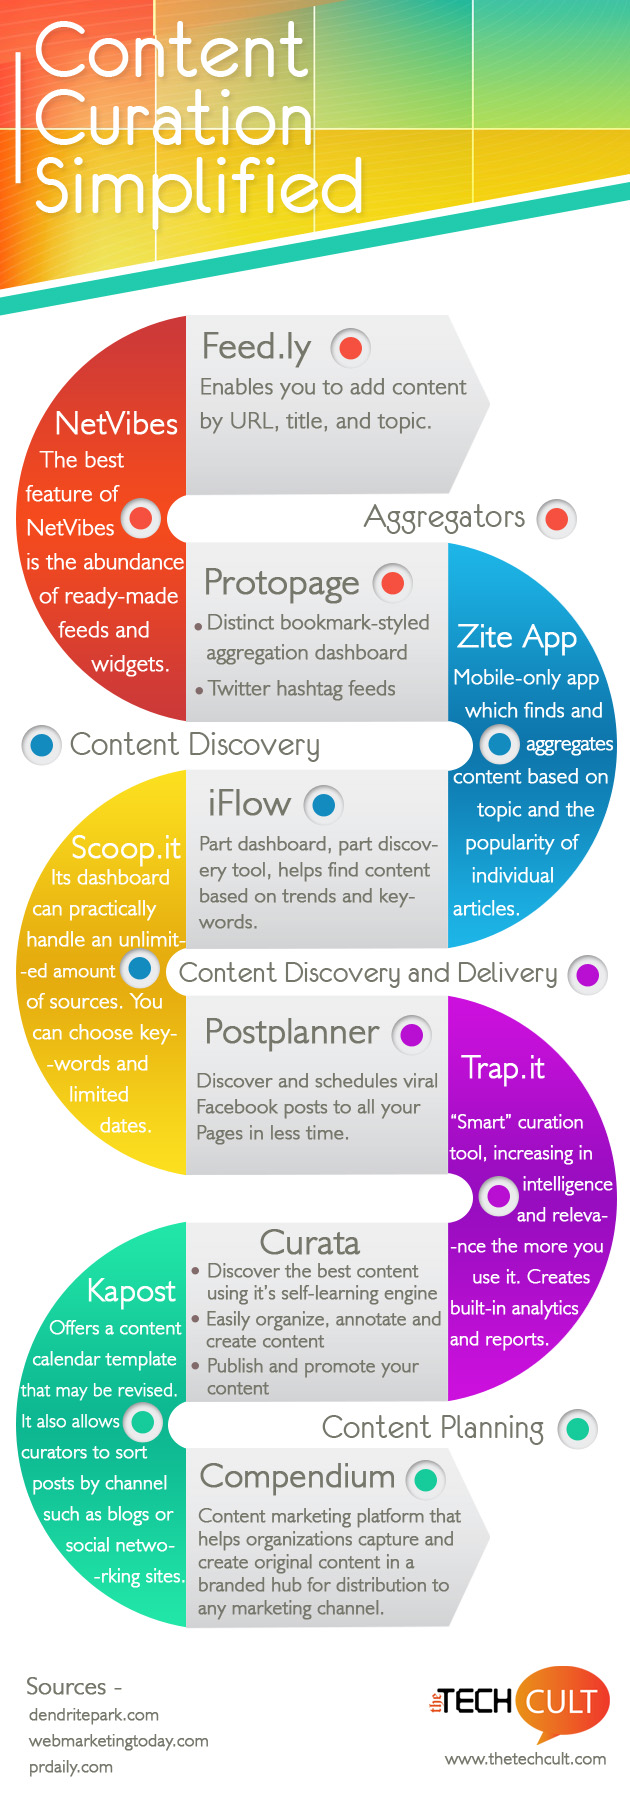 Content Curation Simplified!